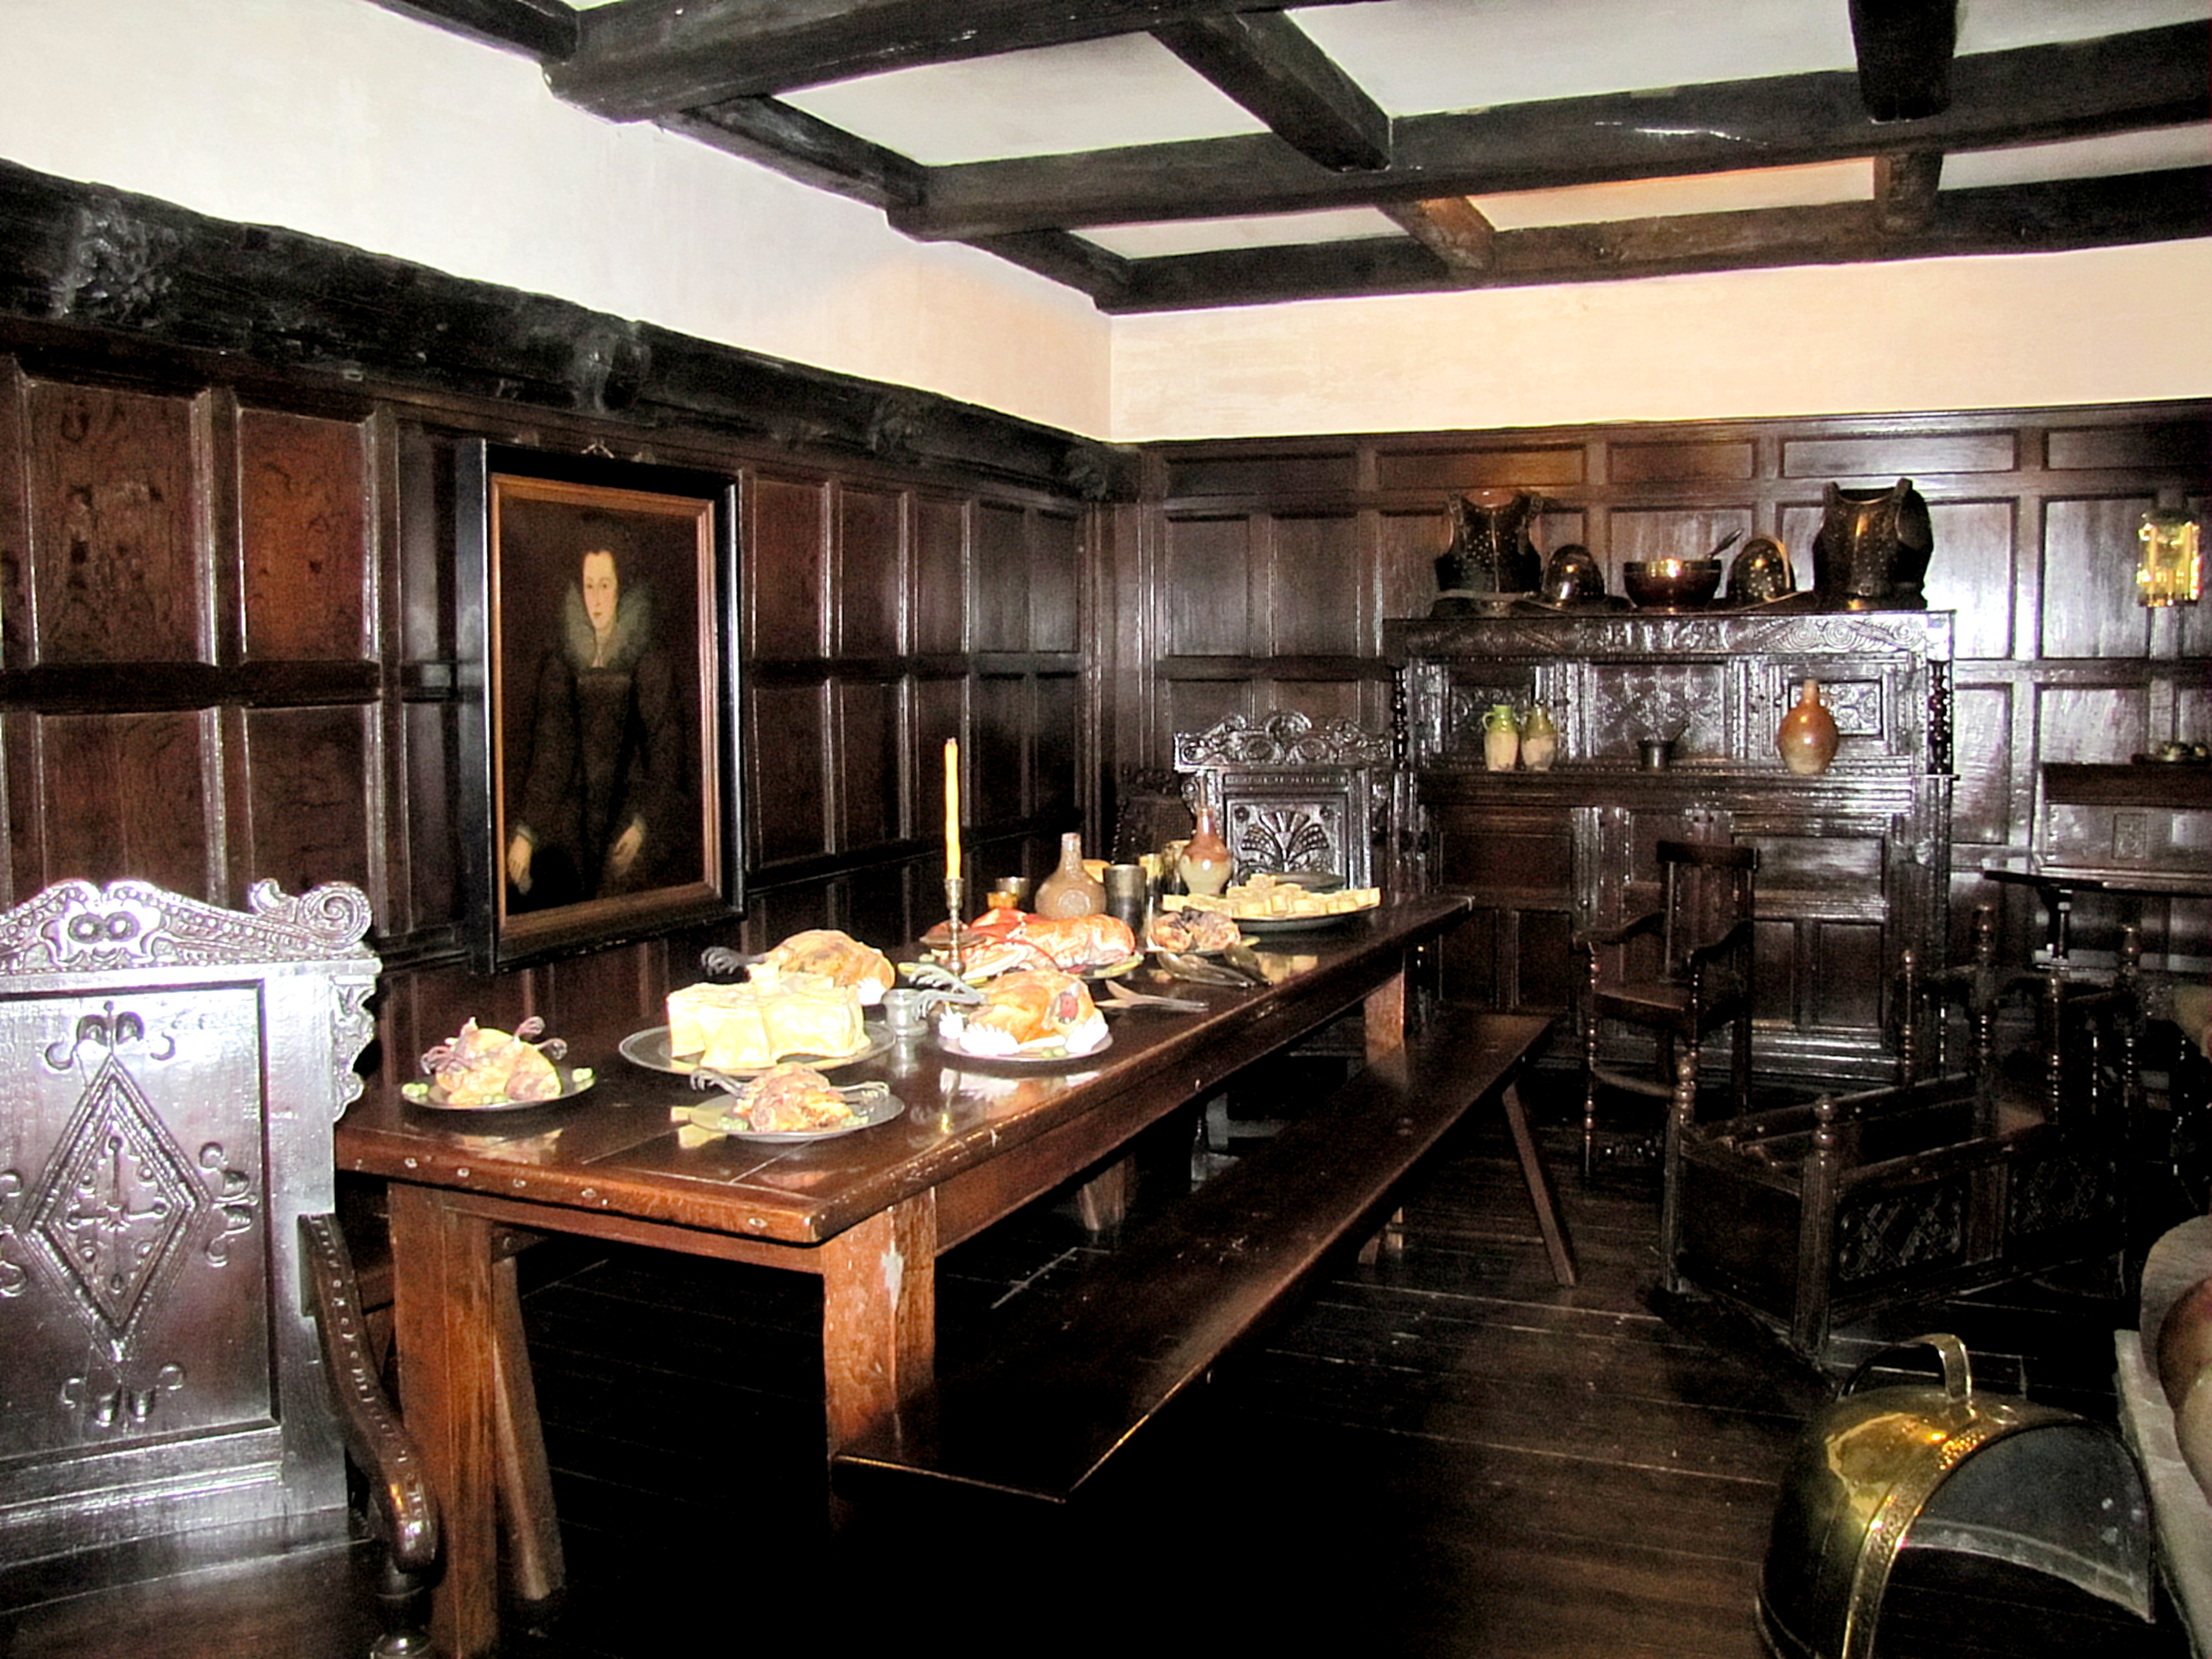 Here's a dining room from the Elizabethan era.